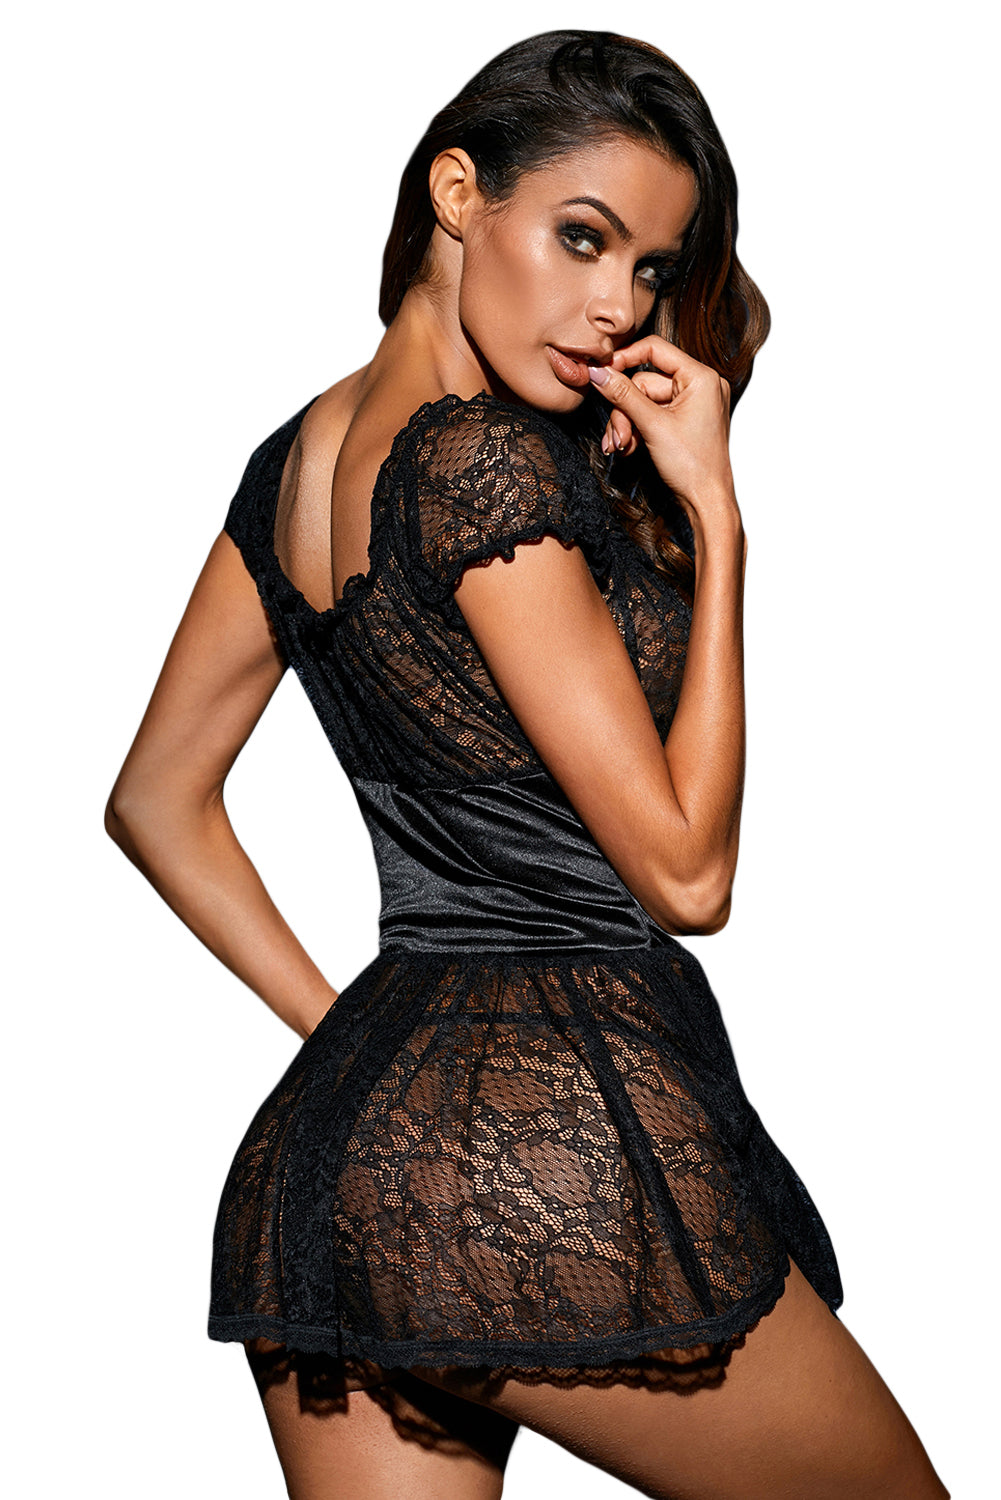 Bewitching Black Lace Babydoll With Pom-Poms Lingerie LAVELIQ